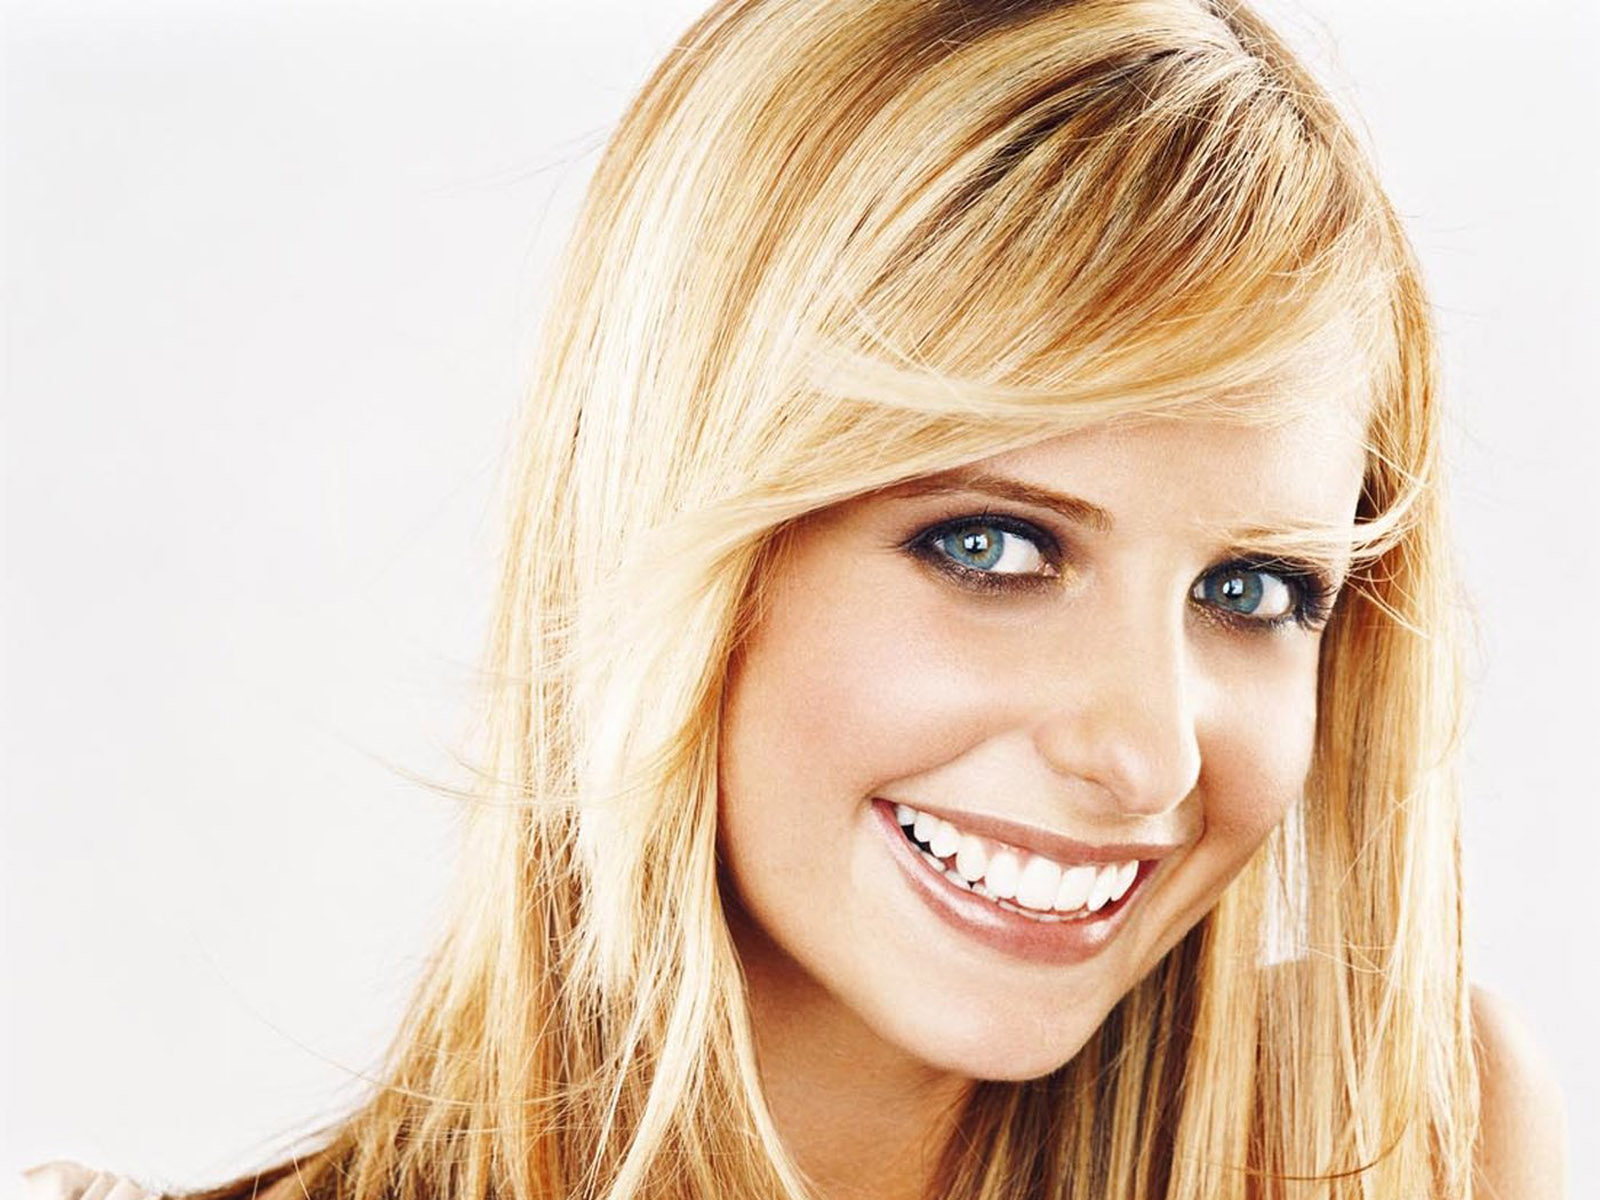 Happy Birthday, Sarah Michelle Gellar!